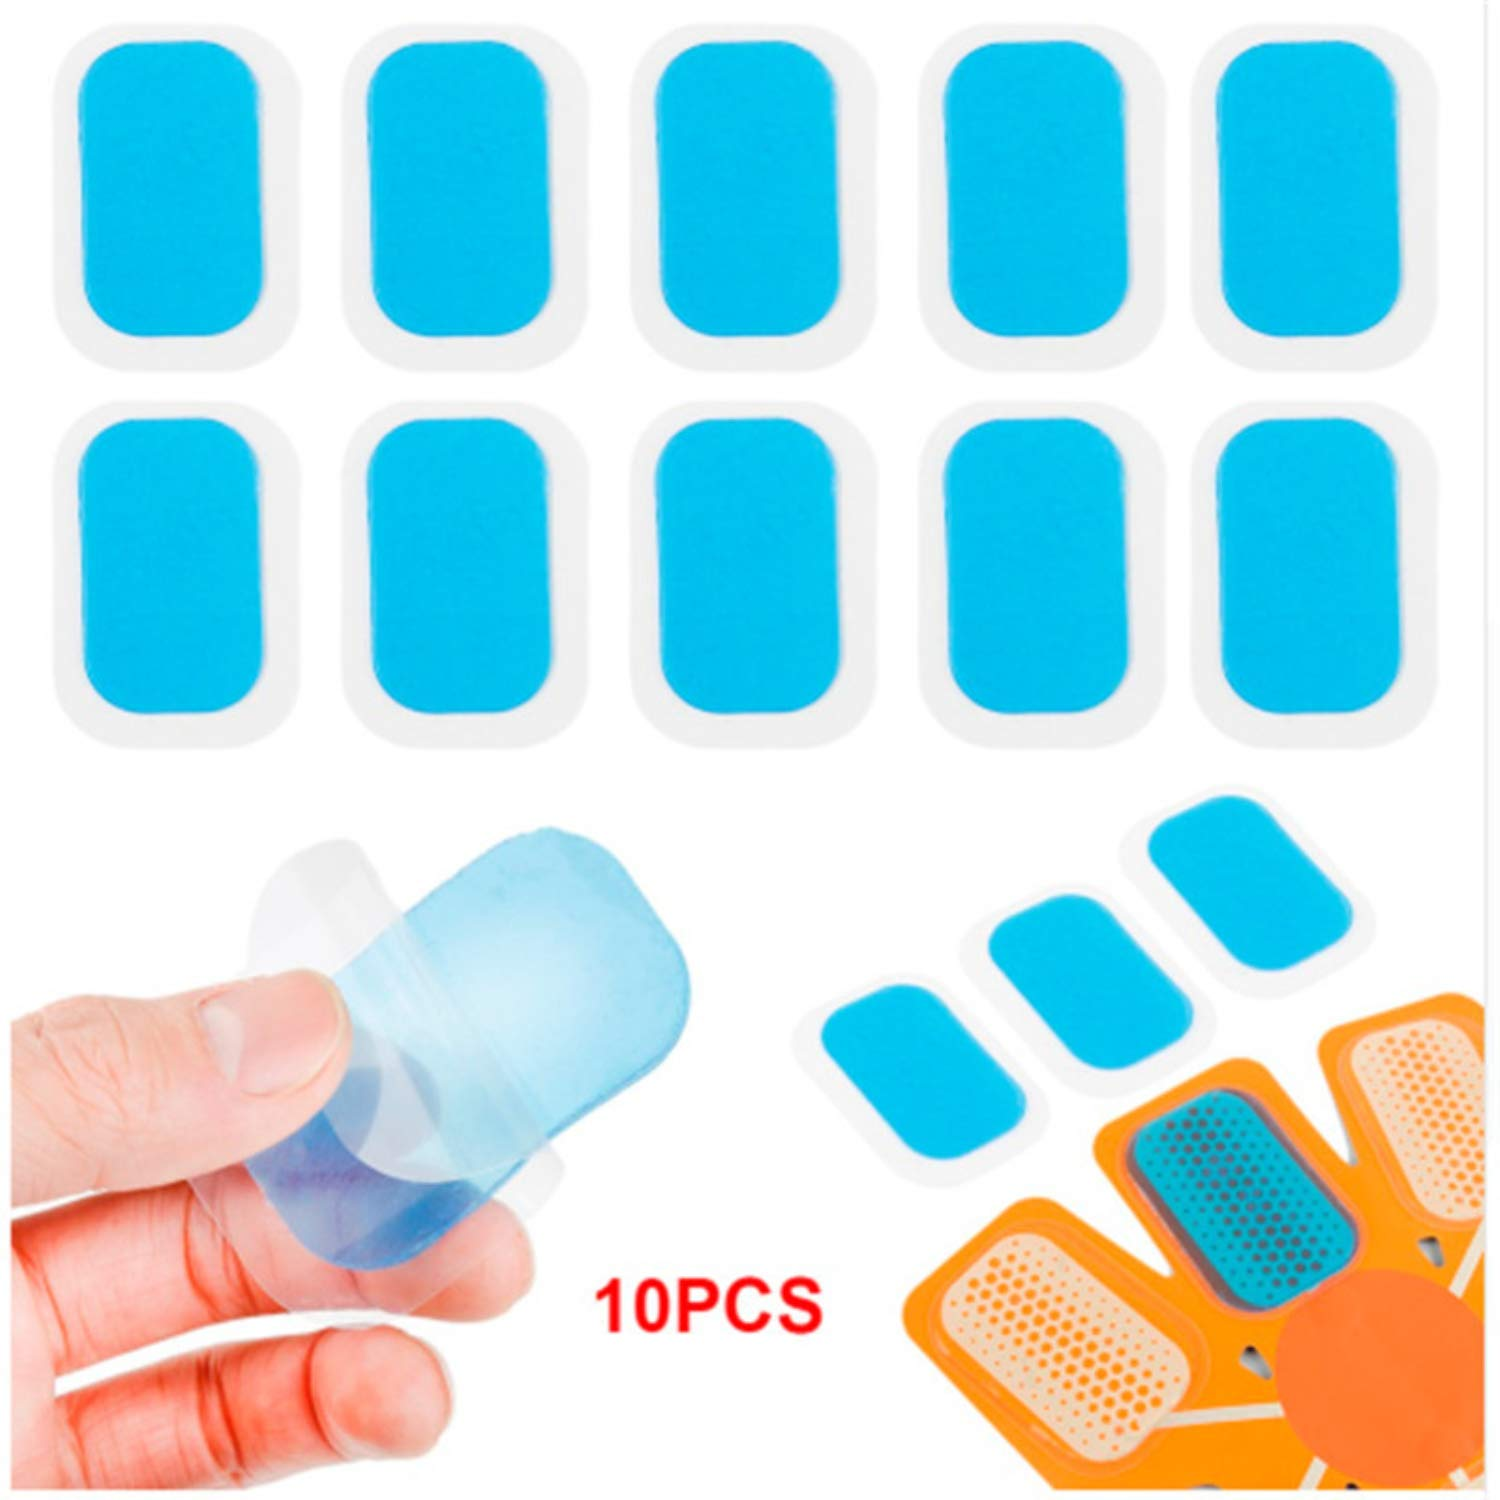 SSTQSAA 10pc Patch Pads Silicone Mat Gel Stickers For Wireless Smart EMS Abdominal Muscles Training Body Massager